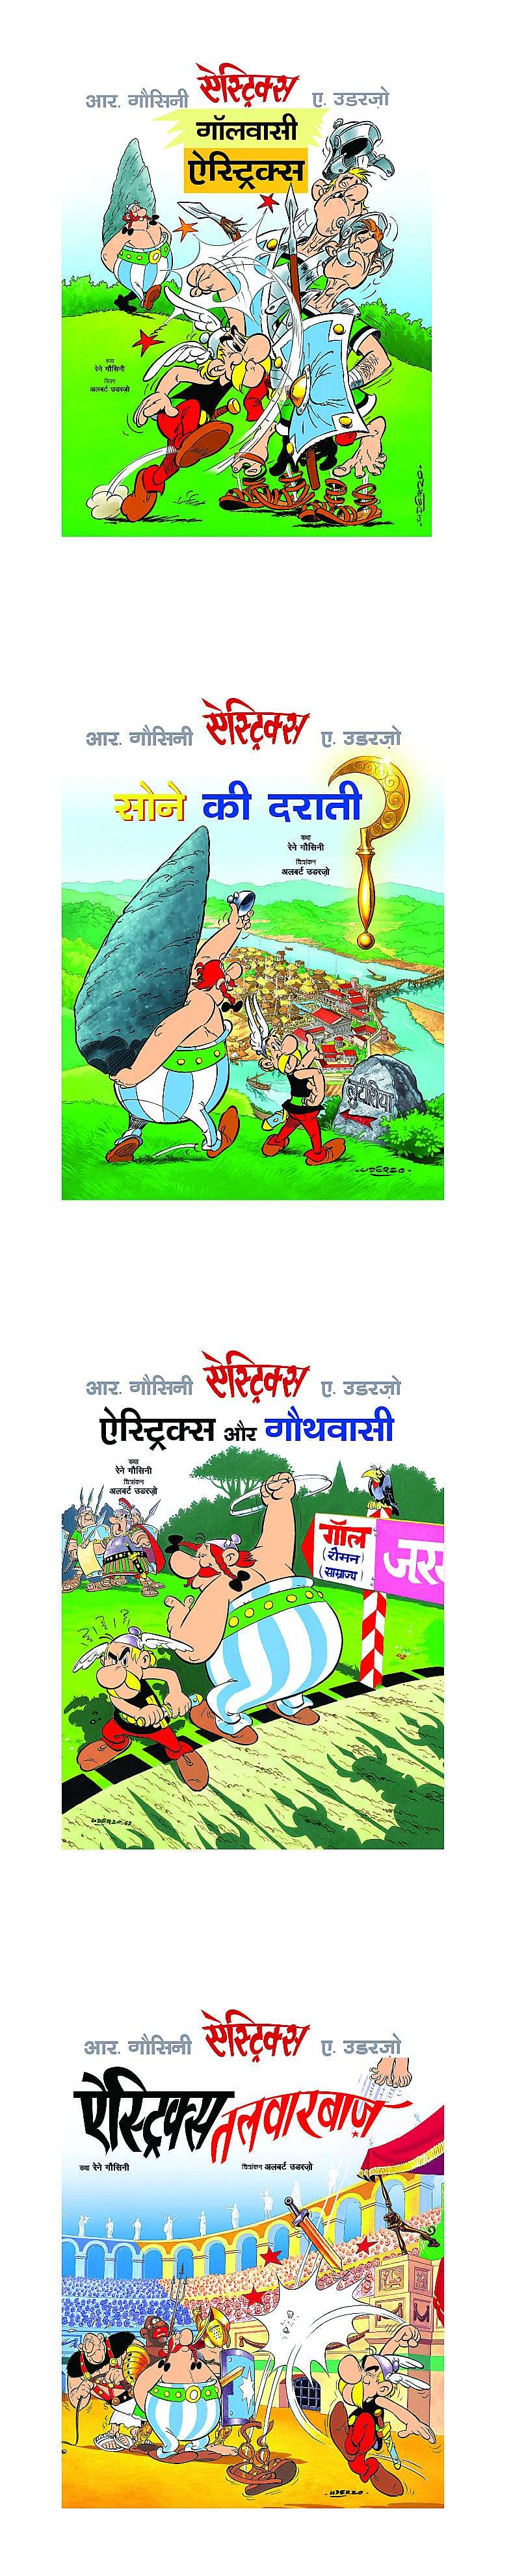 We Re Going Desi By Toutatis How Did Asterix And Obelix Learn To